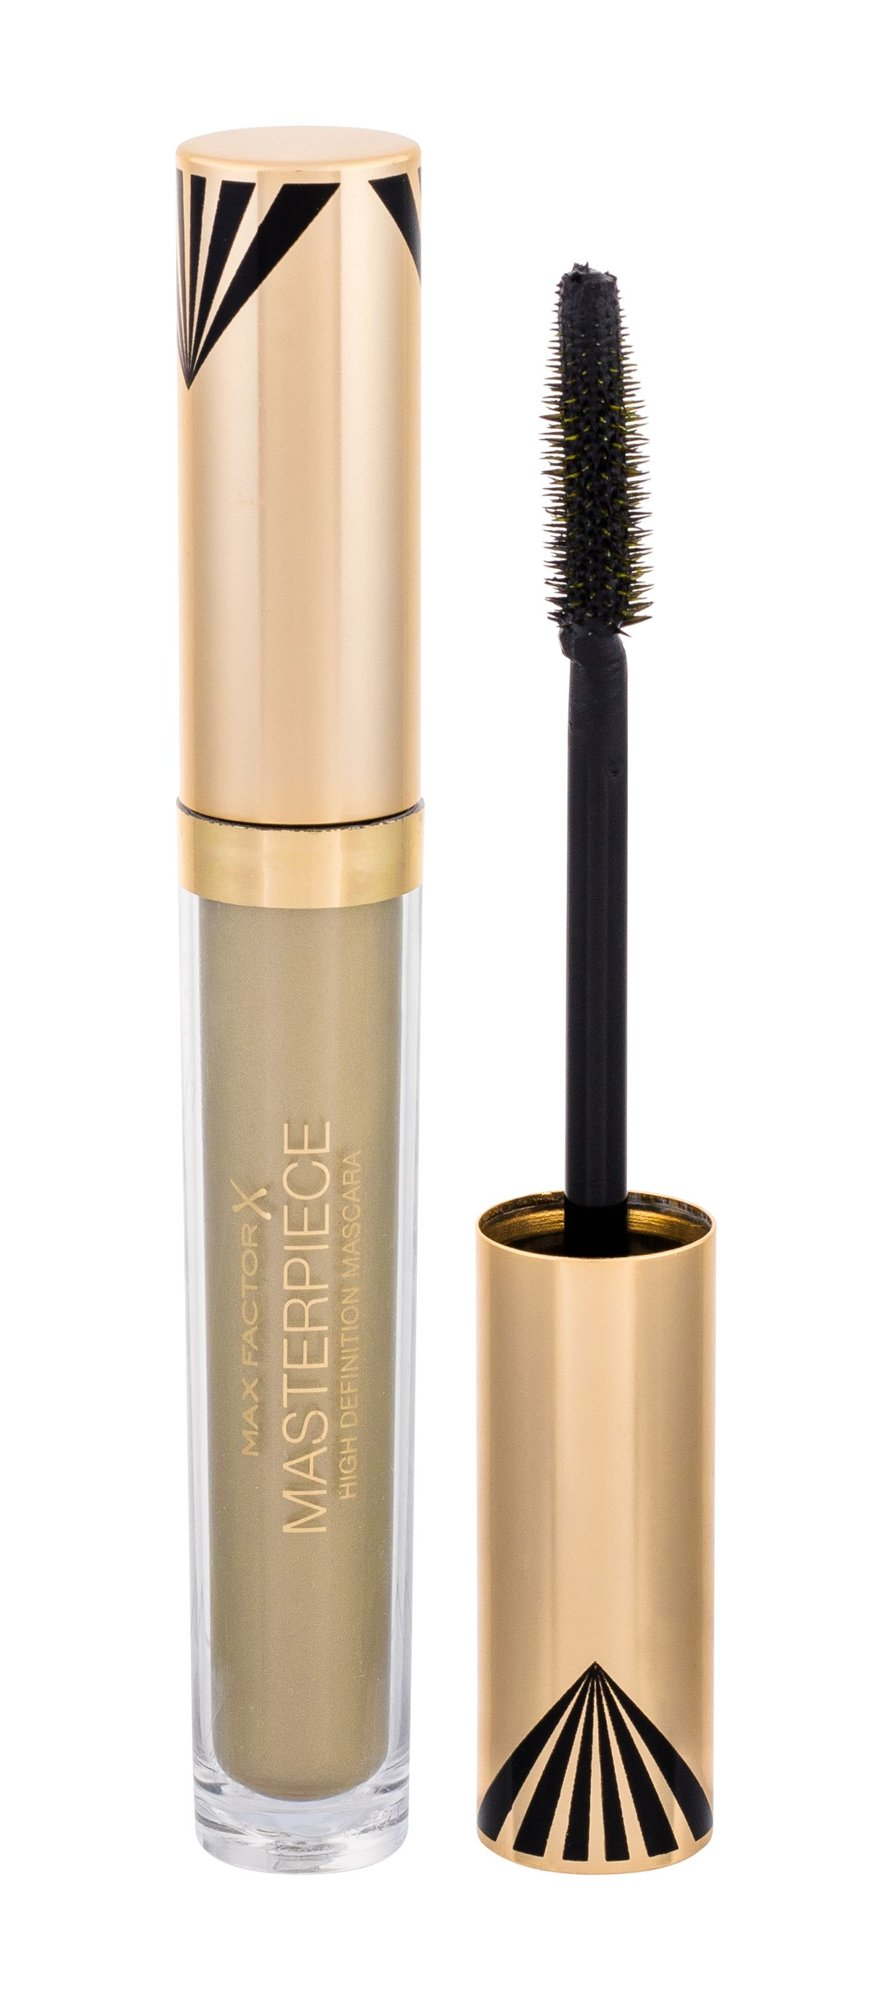 Max Factor Masterpiece Mascara Cosmetic 4,5ml Rich Black